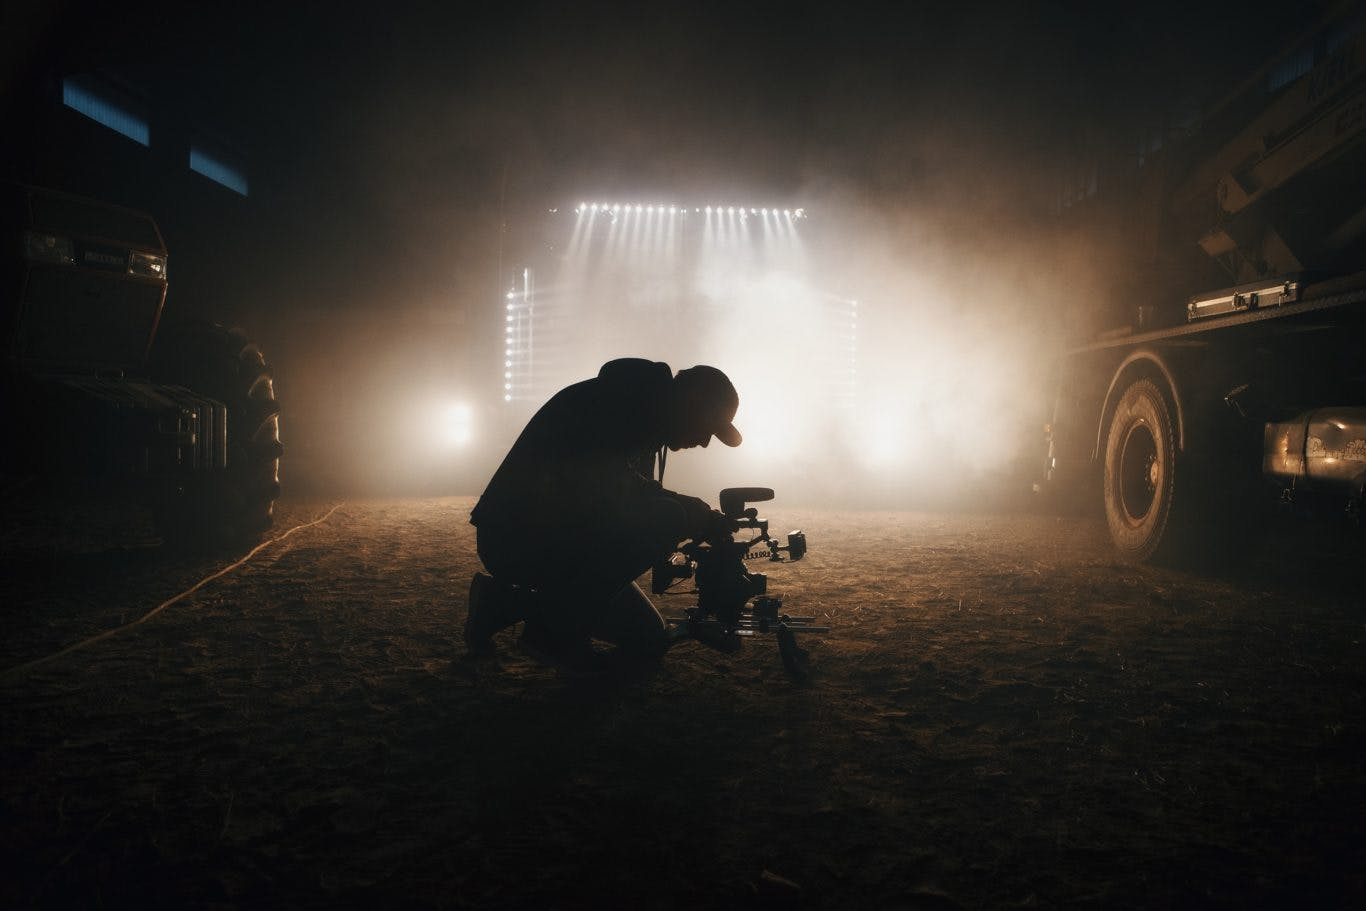 Guy filming trucks in a warehouse with foggy lights